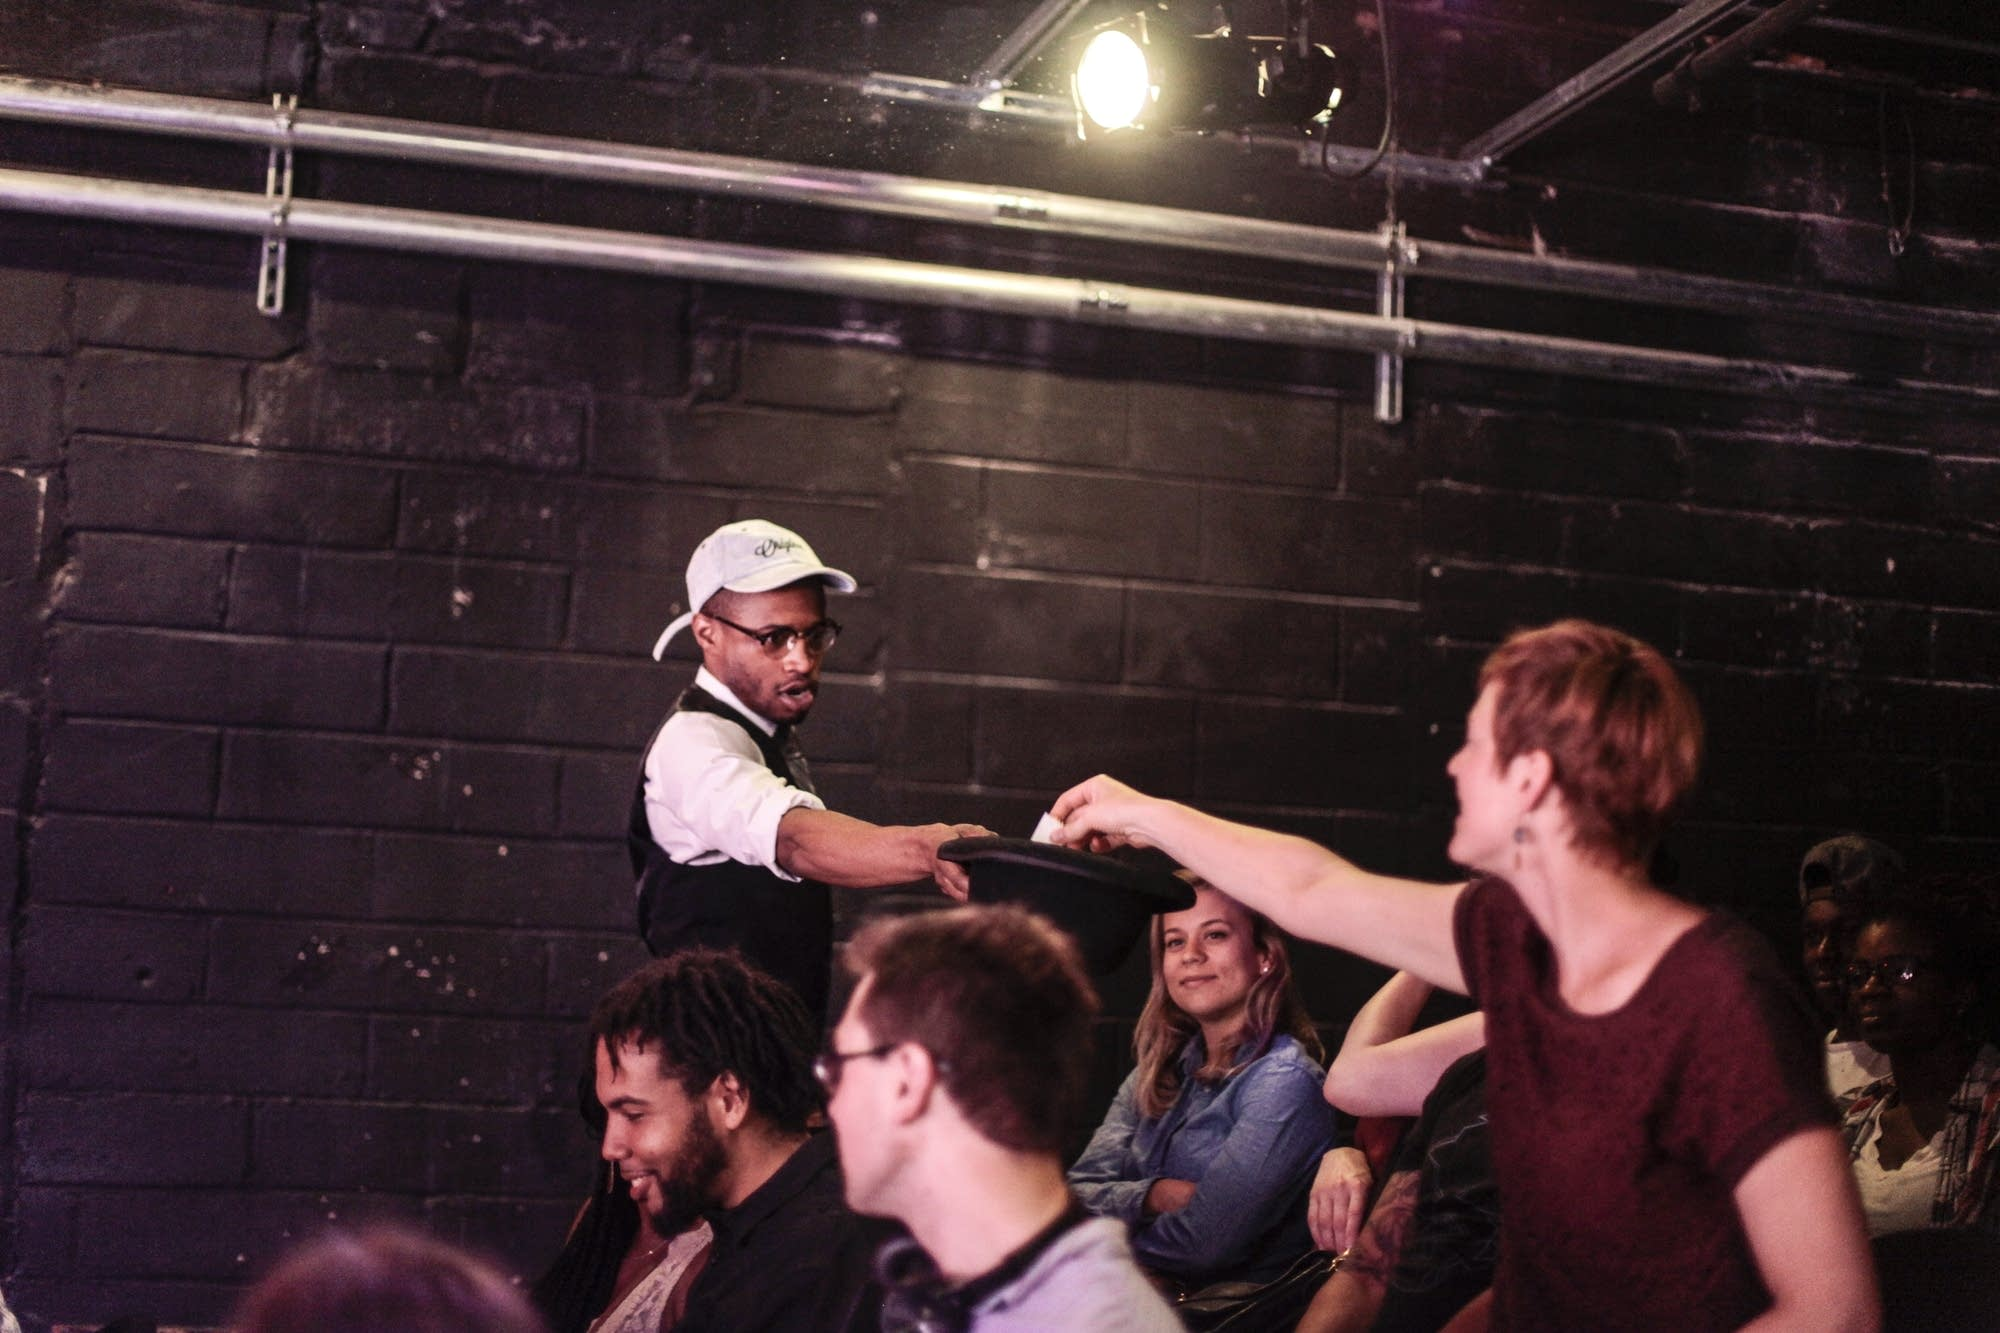 Kory Laquess Pullam gives the swag hat to an audience member.